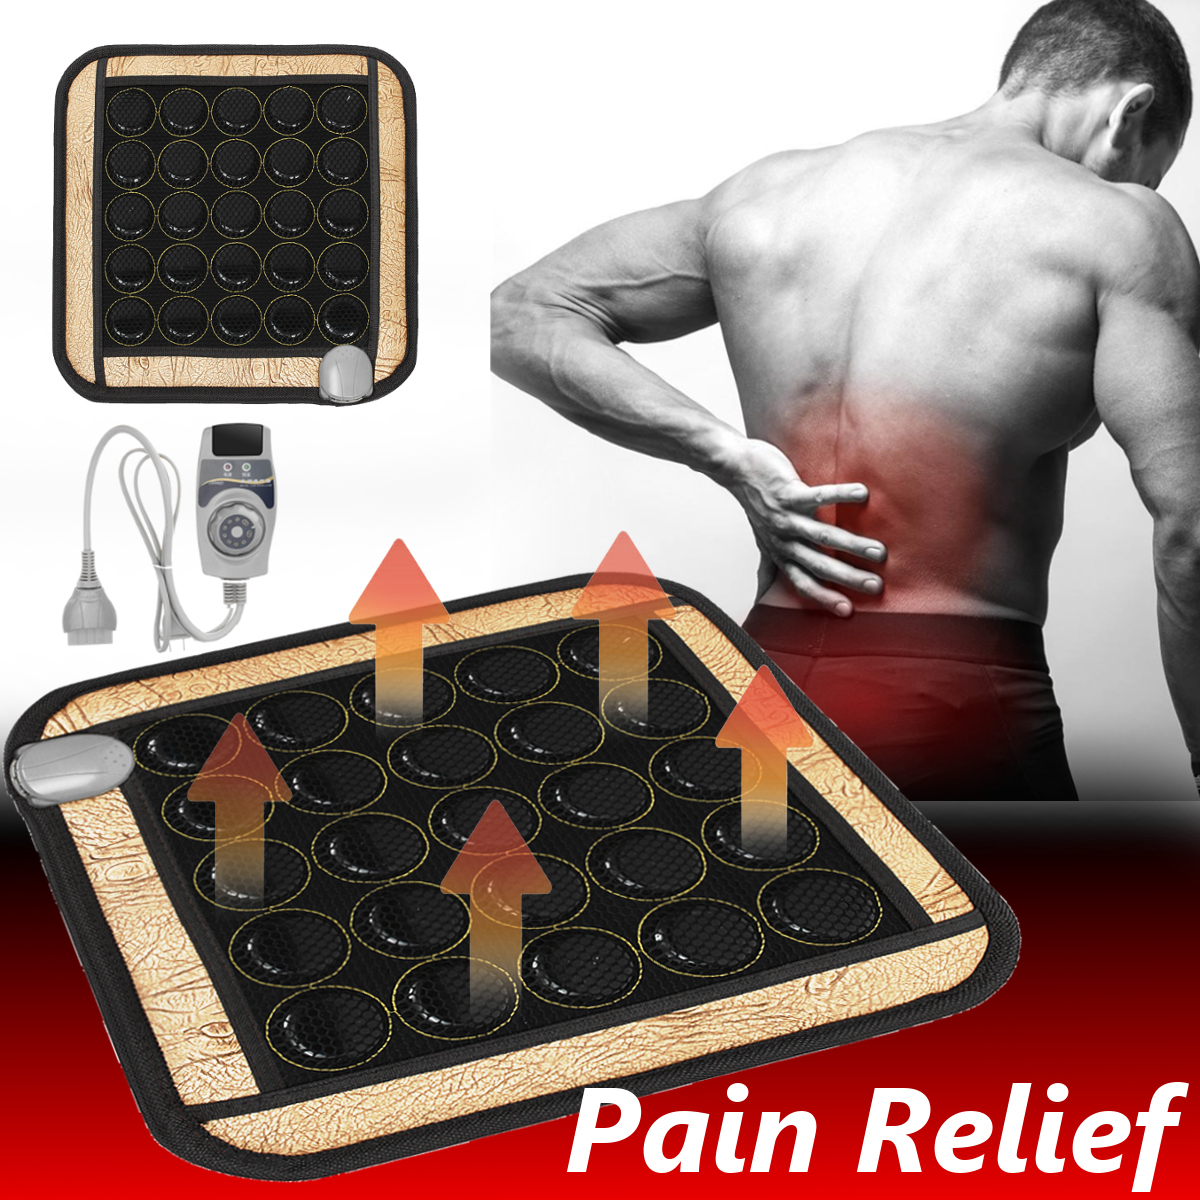 HealthCare Jade Physiotherapy Heating Pad Far Infrared Heating Therapy Natural Jade Stone Mat Office Chair Mattress 45X45CM 220V